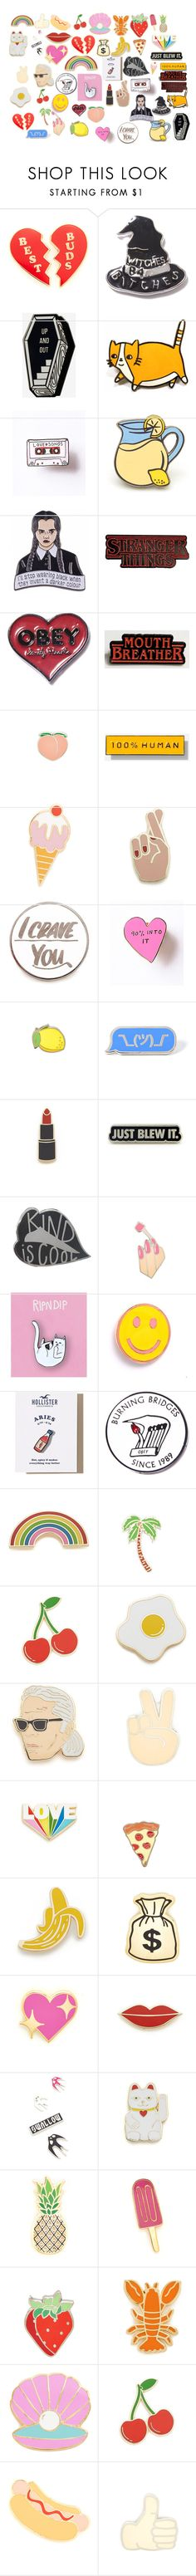 """""""Pins"""" by alilaforce on Polyvore featuring Georgia Perry, Killstar, OBEY Clothing, PINTRILL, Everlane, Baron Von Fancy, RIPNDIP, Hollister Co. and McQ by Alexander McQueen"""